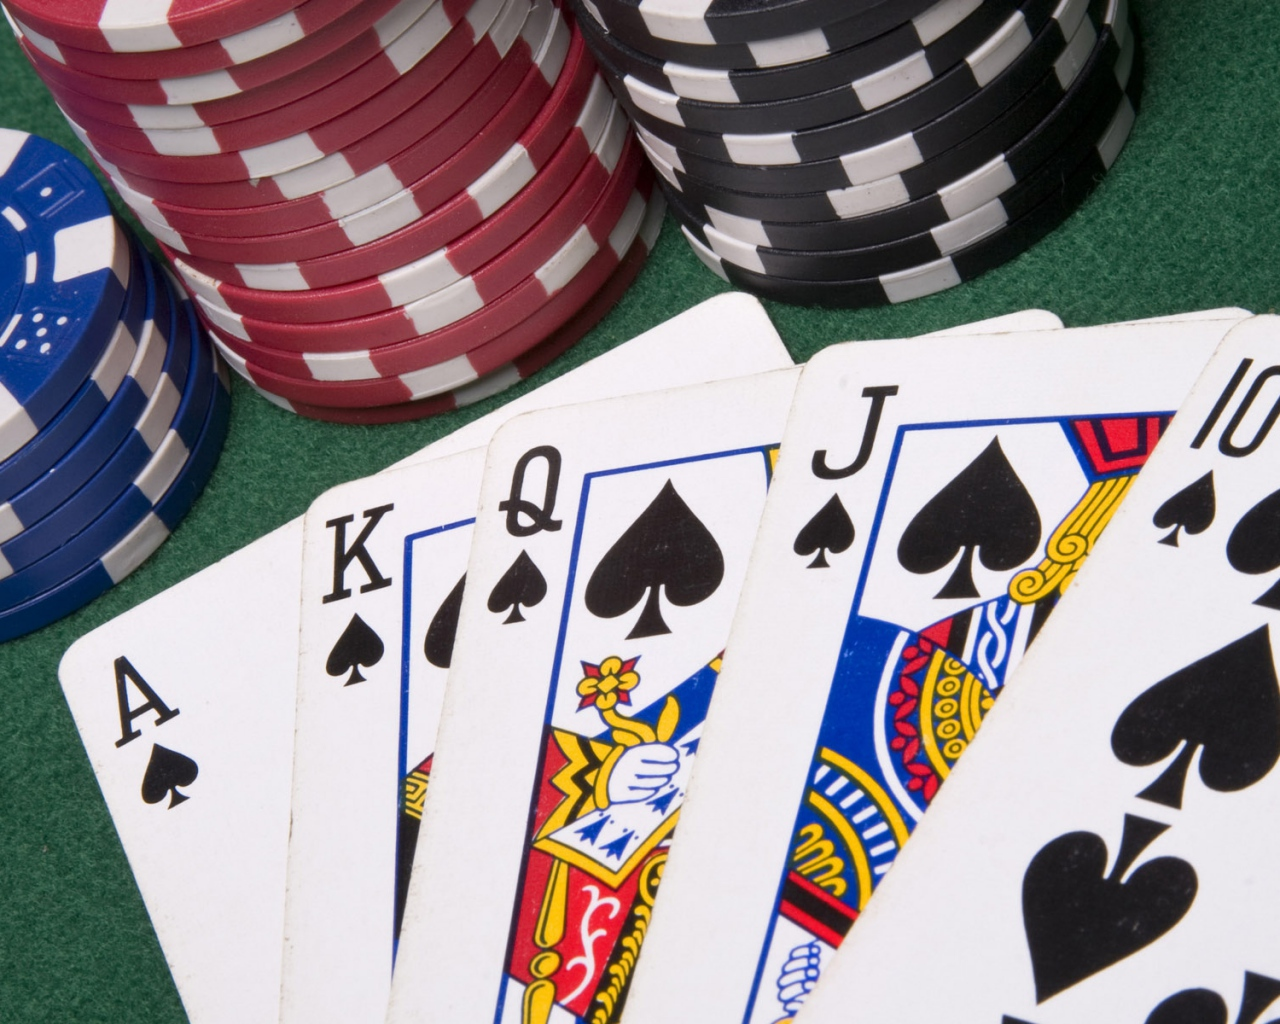 303-3031029 poker-wallpapers-hd-desktop-backgrounds-cards-at-casino